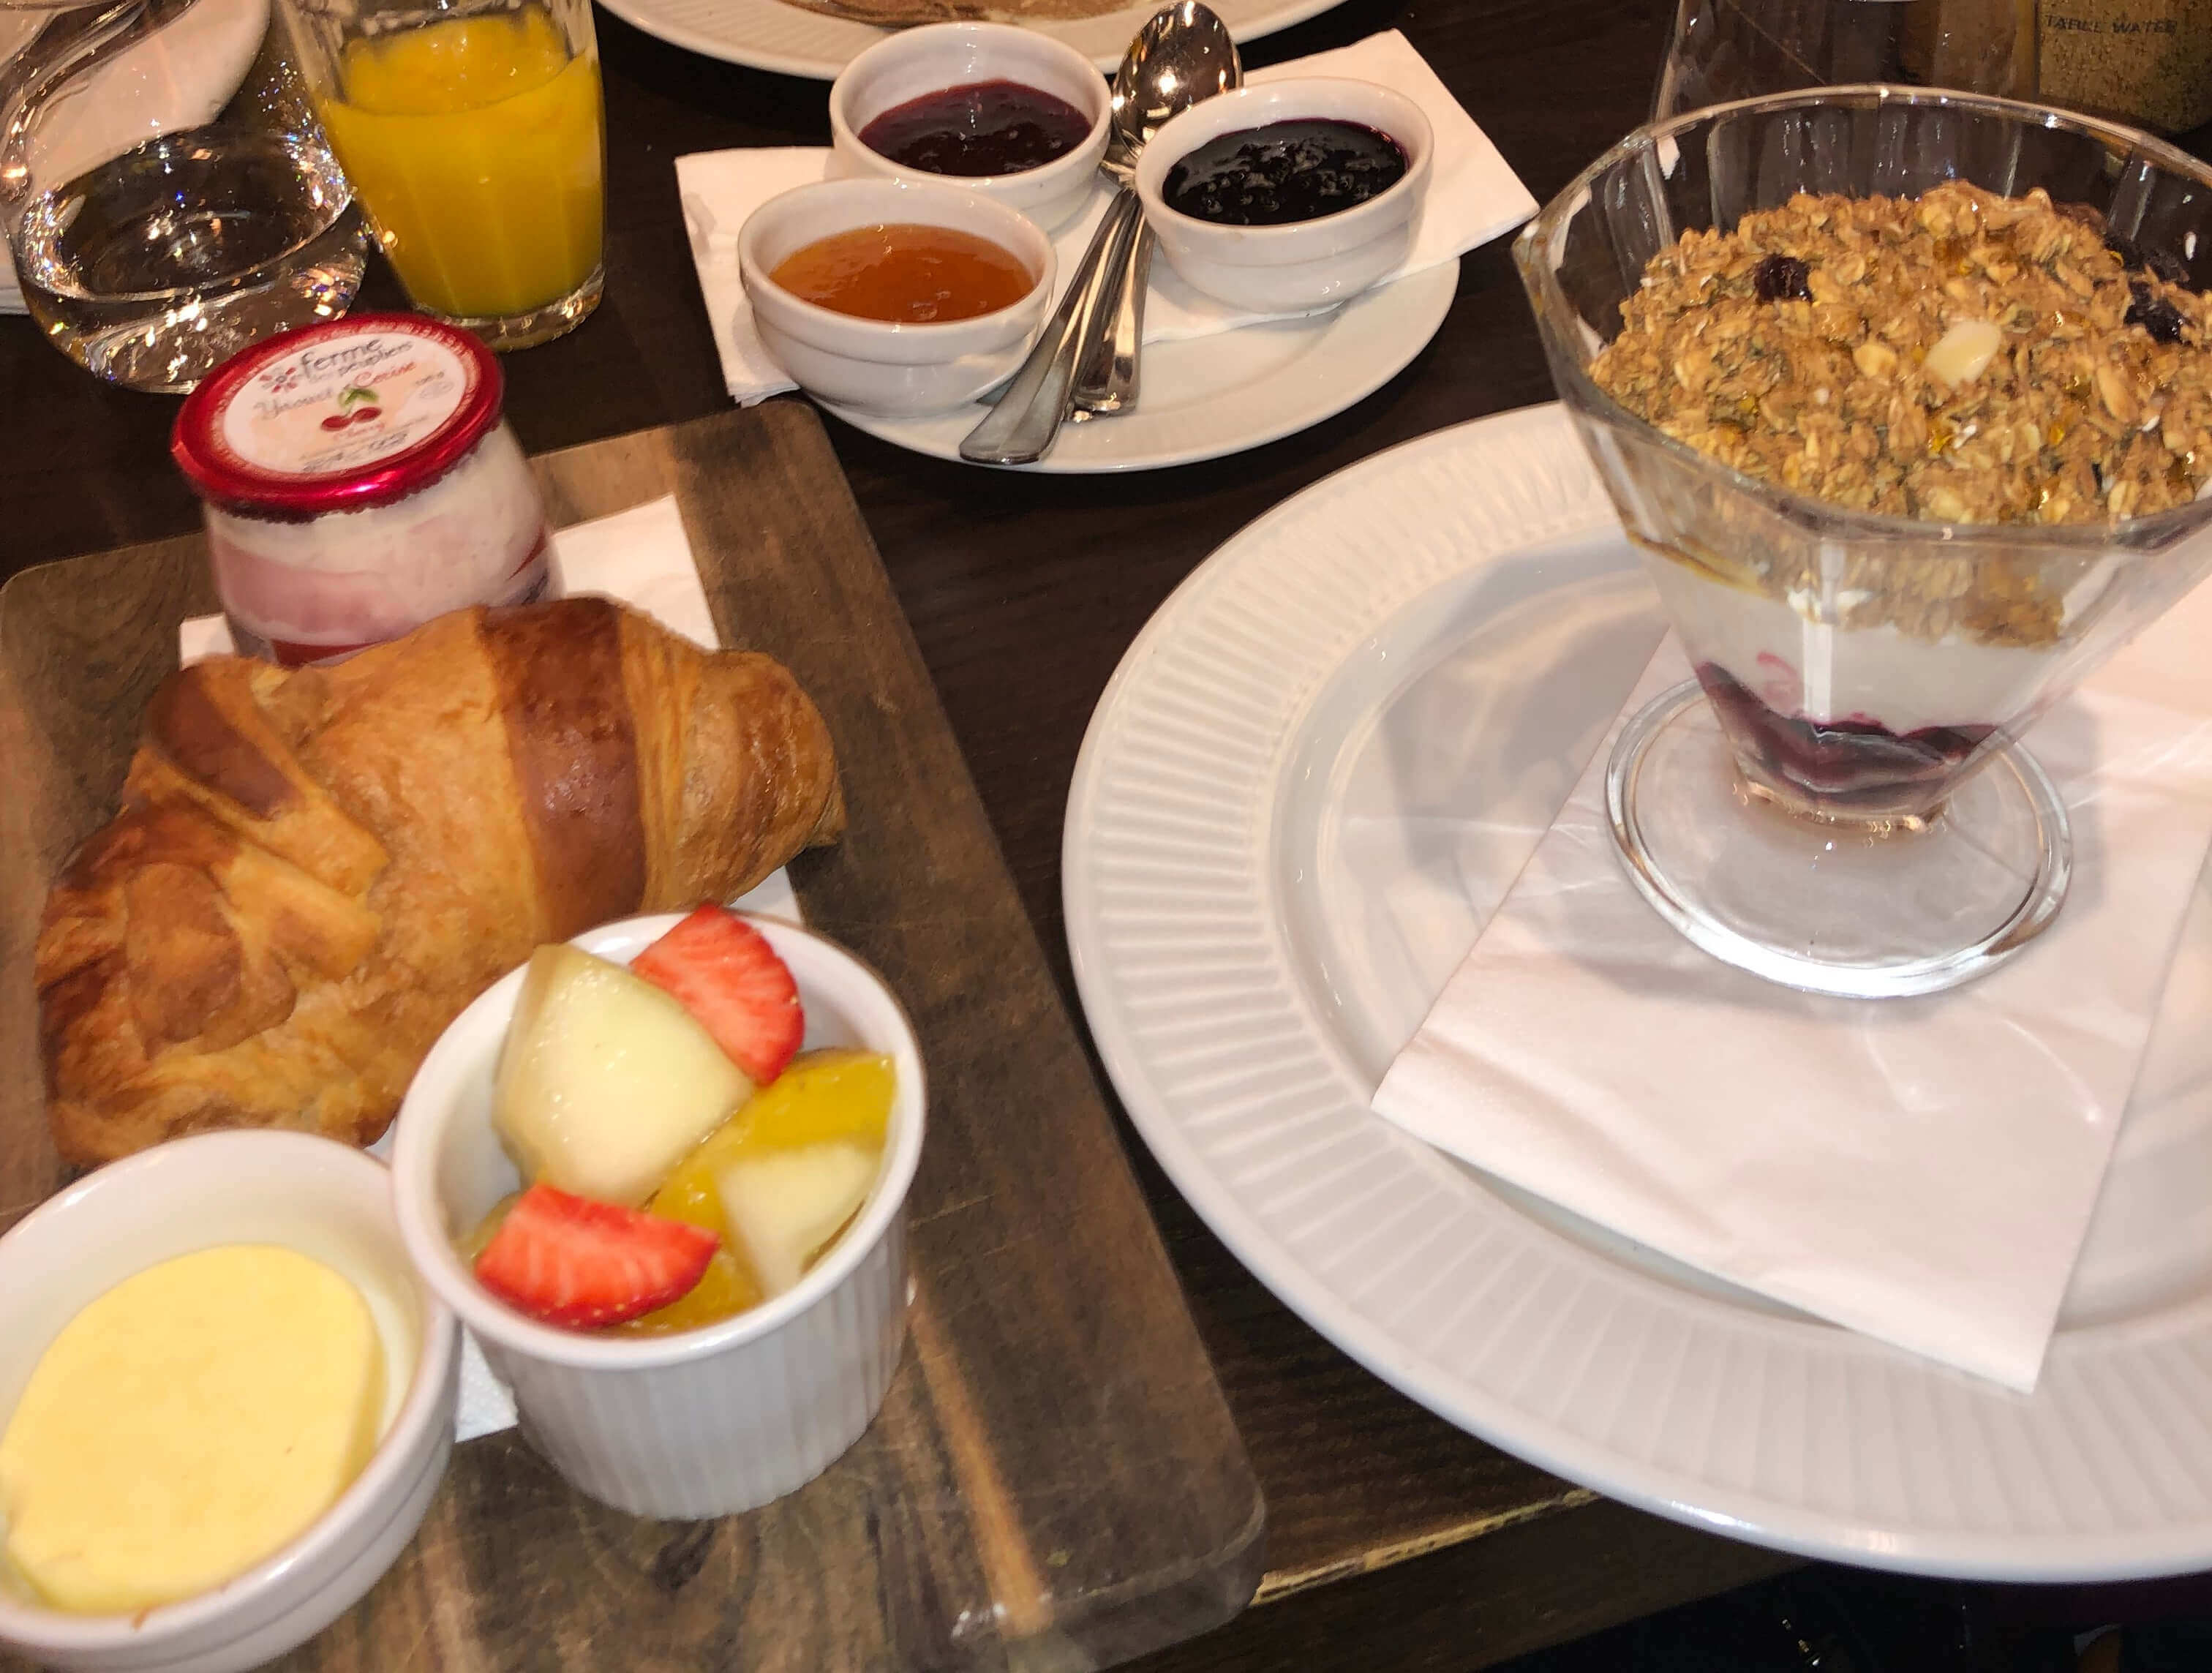 Brunch at Cote | Reasonably priced Brunch near me